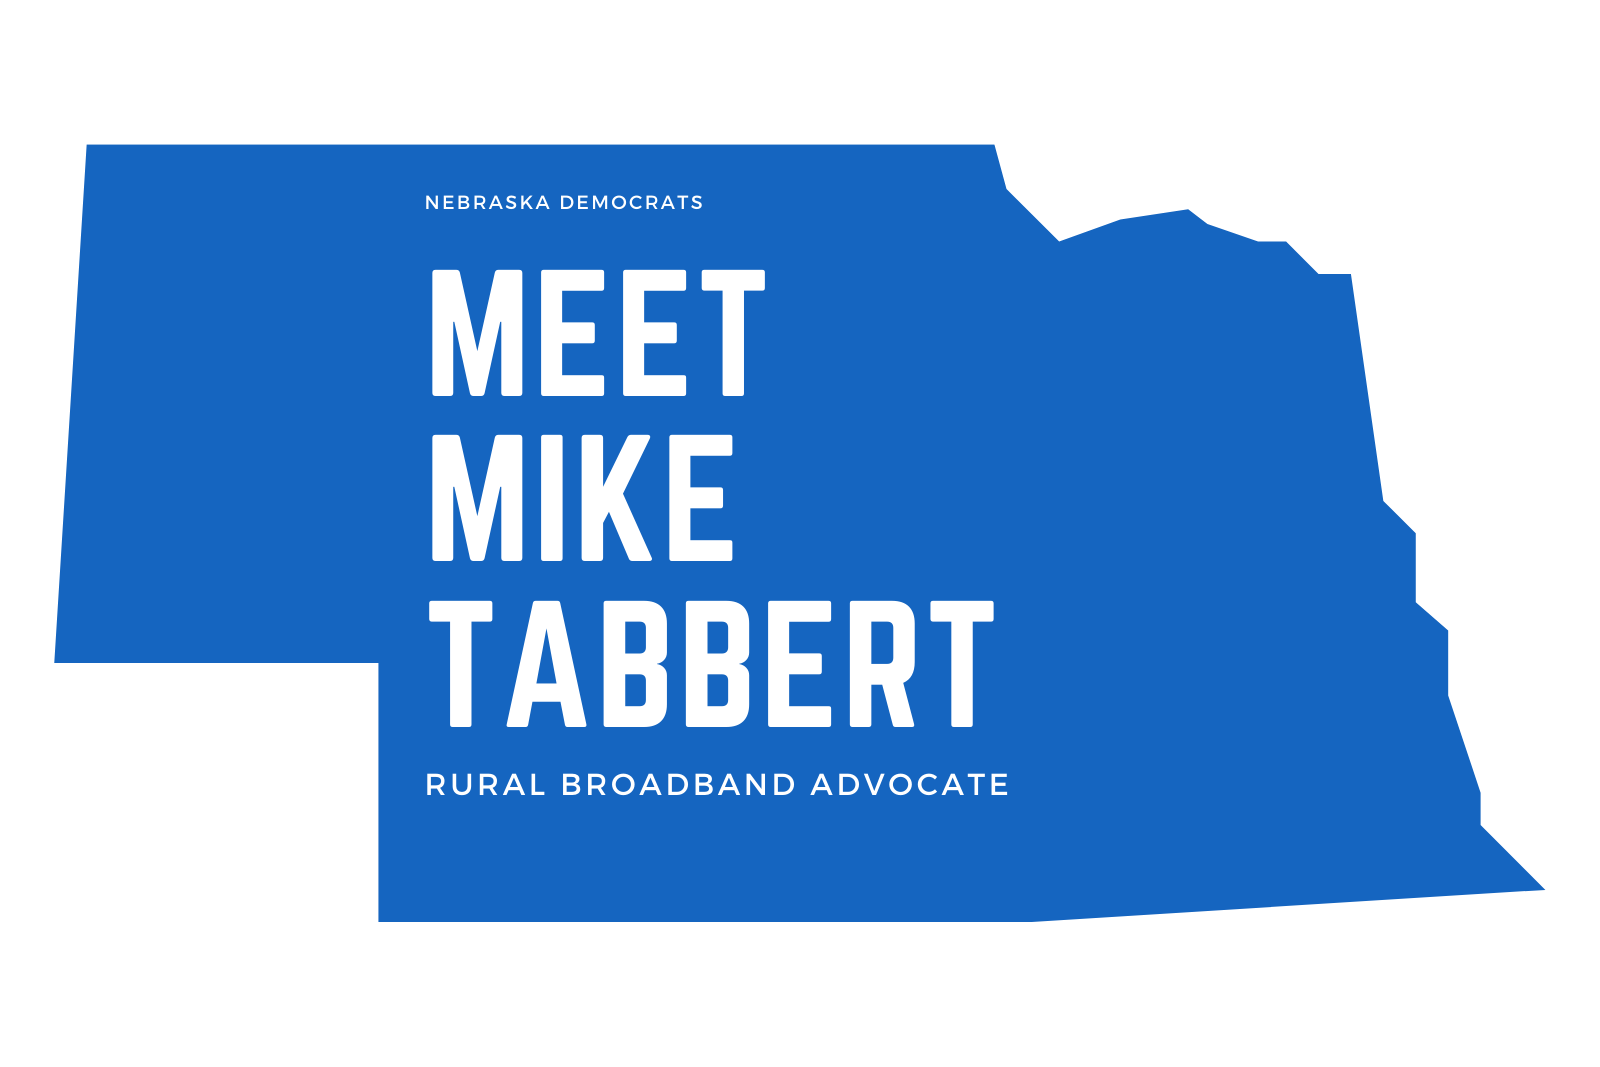 Ep. 20 Meet Mike Tabbert, Rural Broadband Advocate